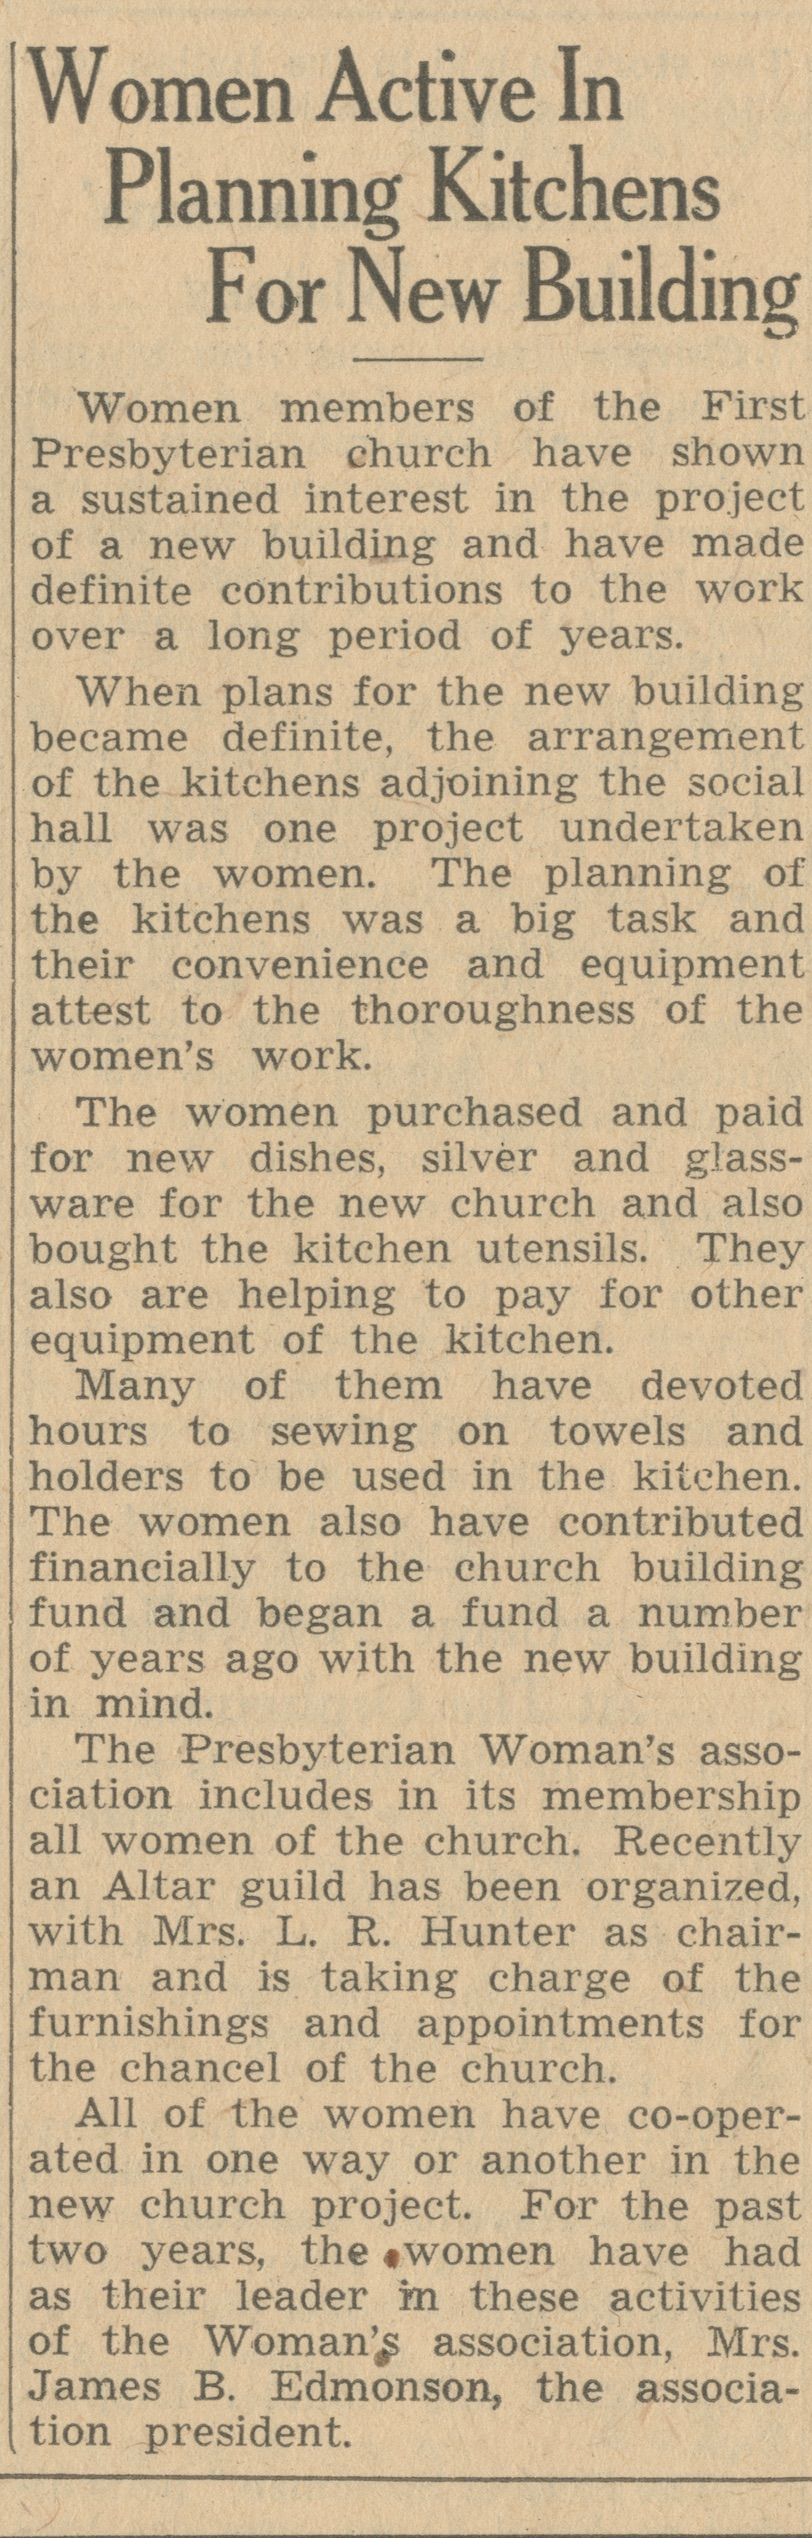 Women Active In Planning Kitchens For New Building image